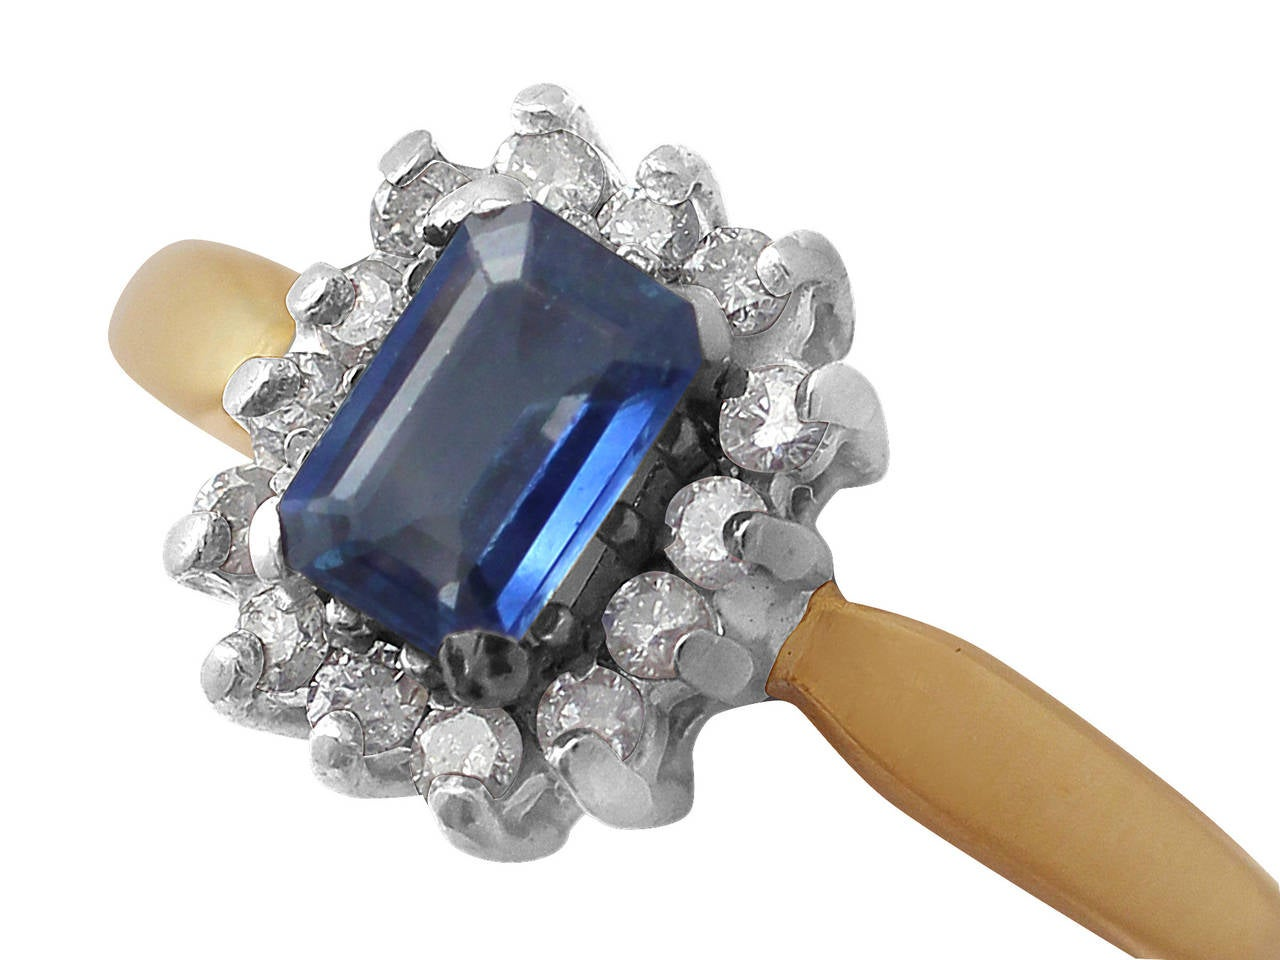 0.48Ct Sapphire & 0.35Ct Diamond, 18k Yellow Gold Cluster Ring - Vintage 3